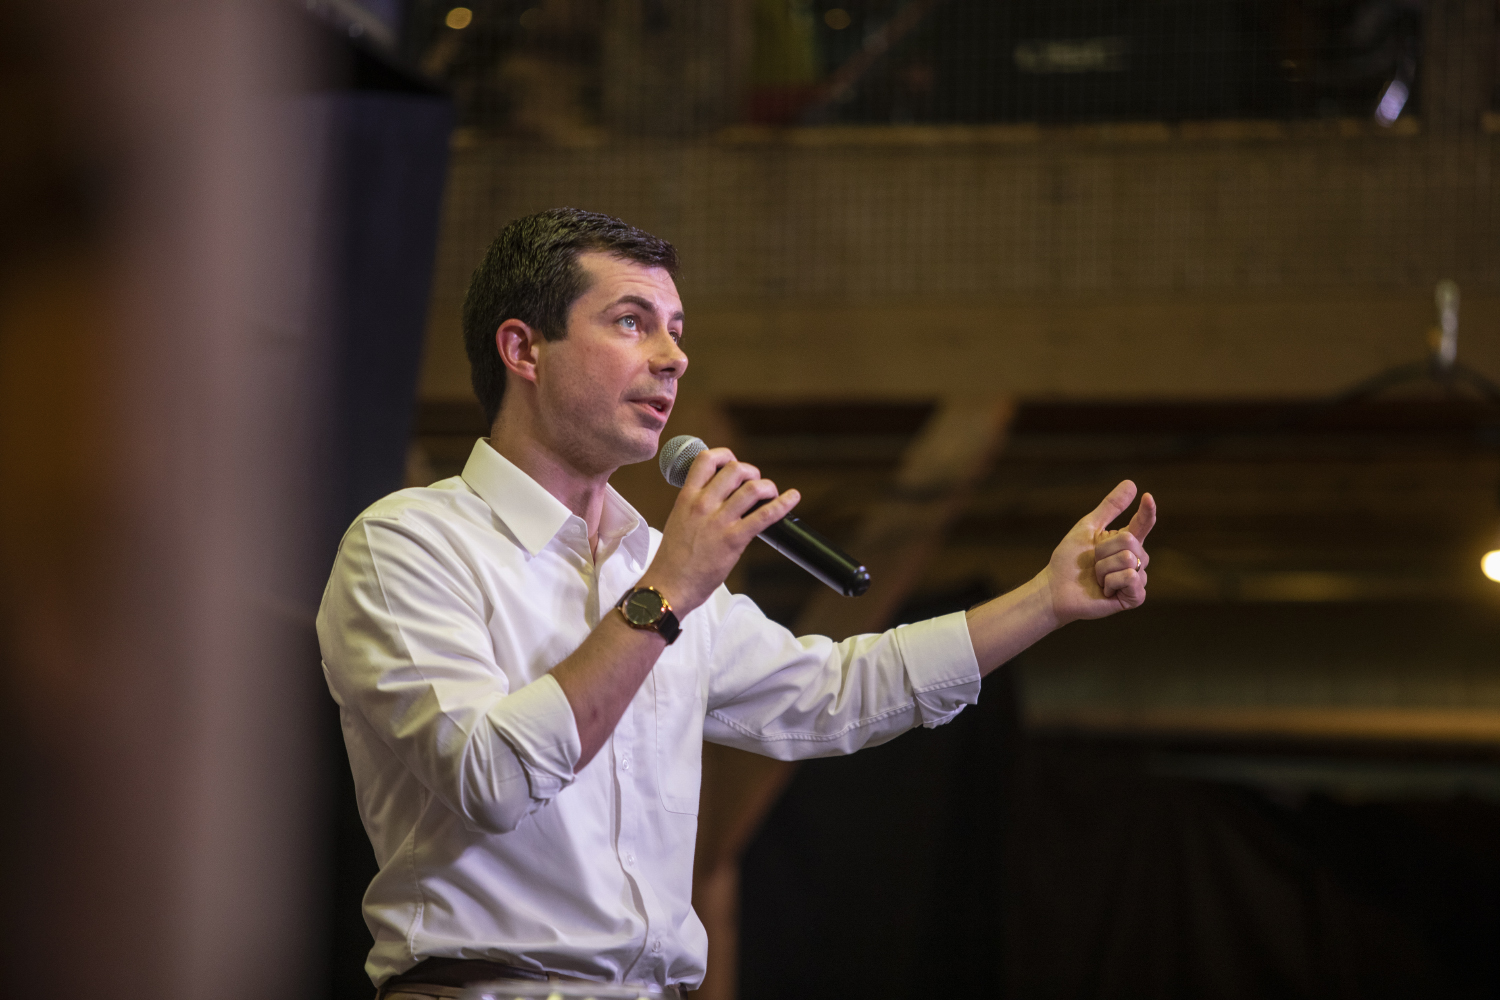 Pete Buttigieg 'Strongly Condemns' 'Voices on Fox' for Spreading 'Fear, Lies'